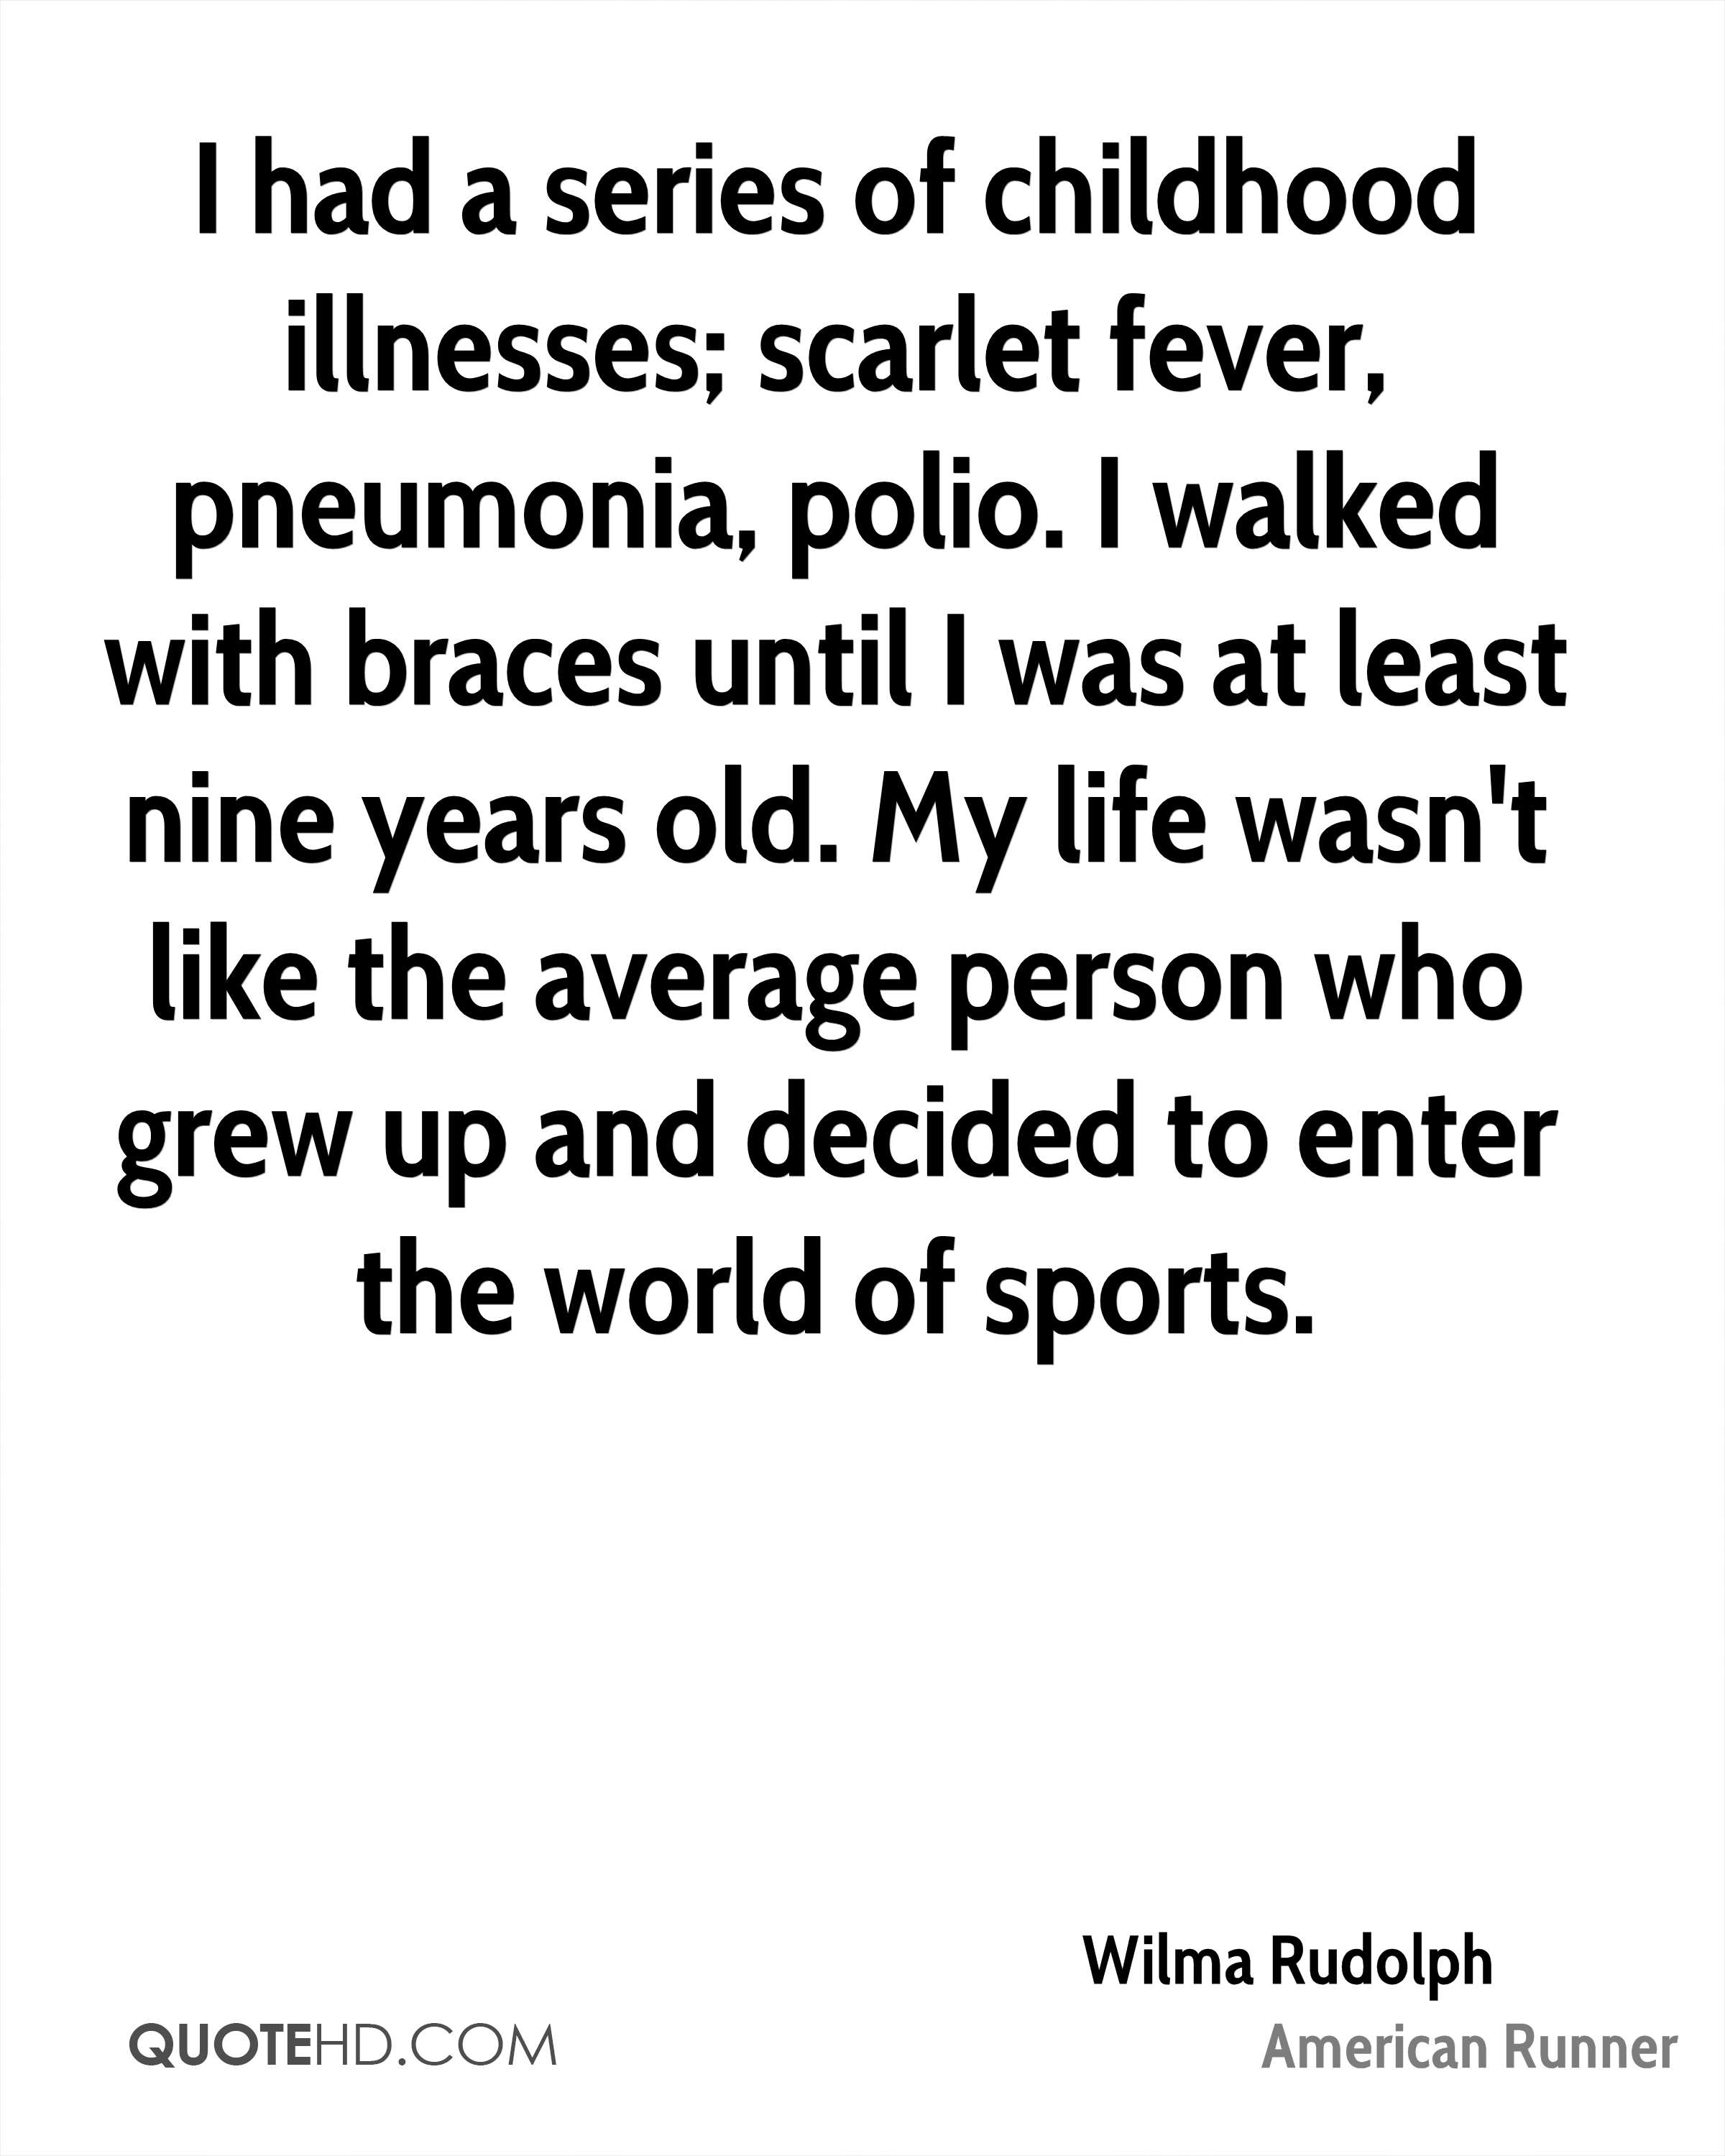 I had a series of childhood illnesses; scarlet fever, pneumonia, polio. I walked with braces until I was at least nine years old. My life wasn't like the average person who grew up and decided to enter the world of sports.